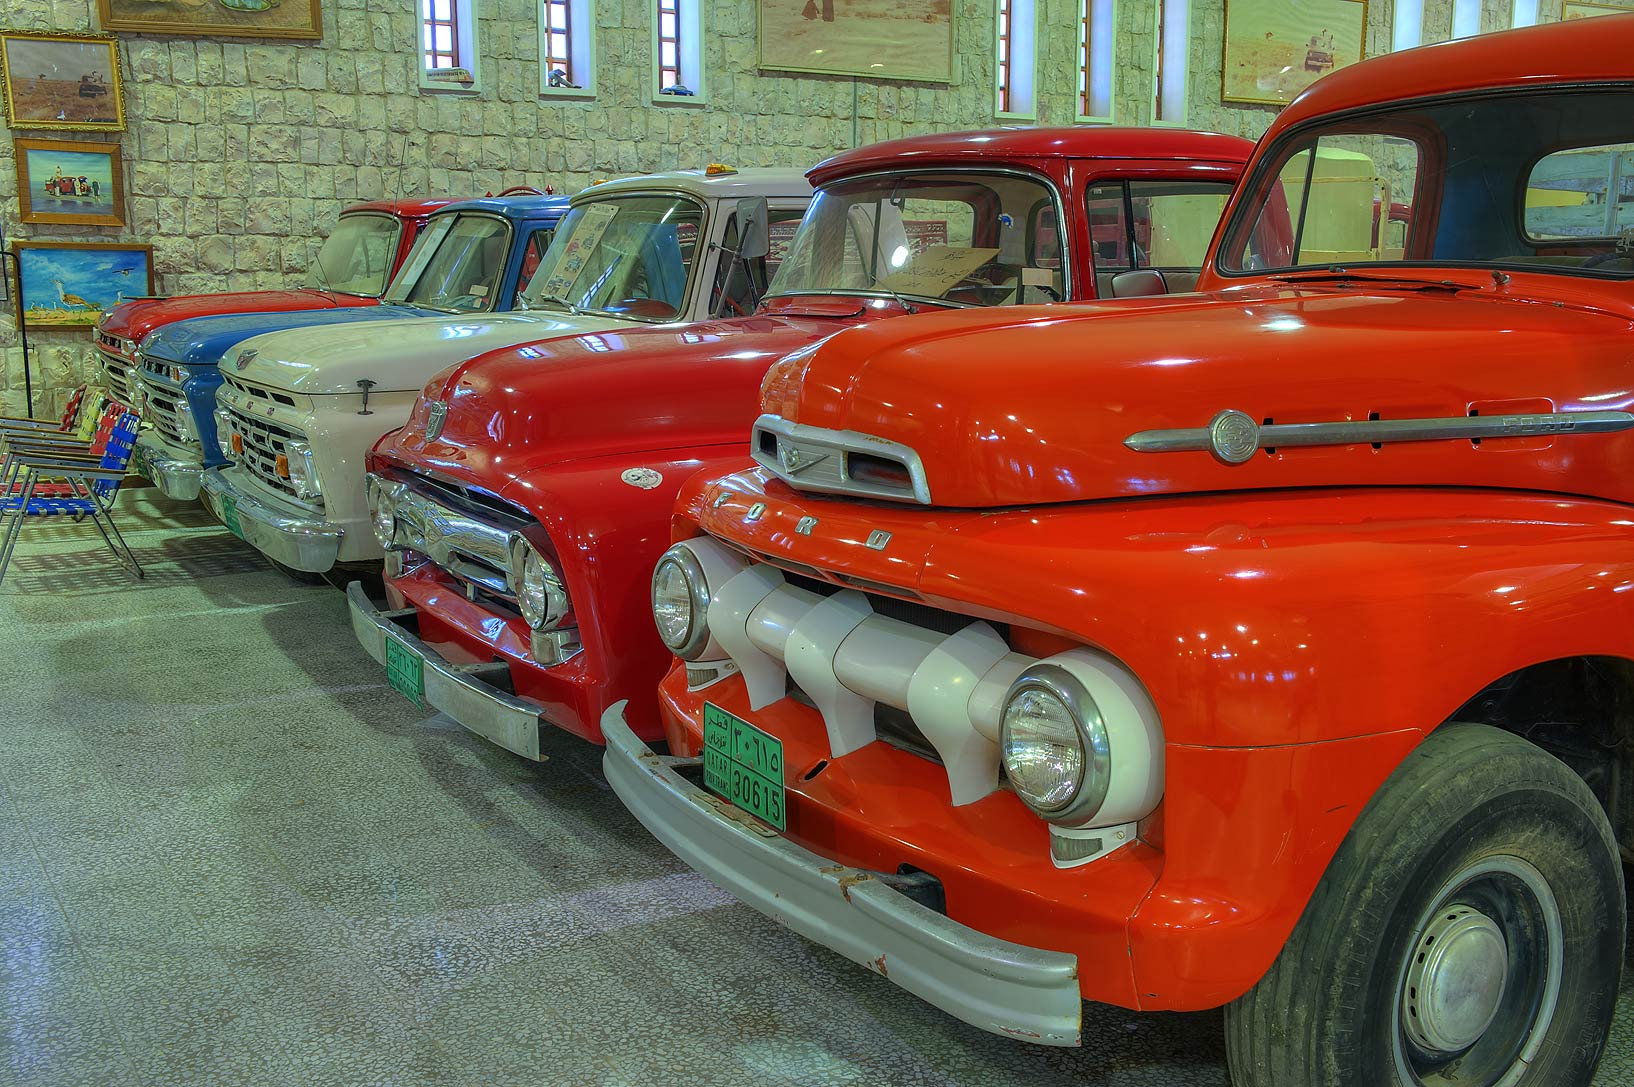 Vintage orange Ford cars in Sheikh Faisal Bin...Museum near Al-Shahaniya. Doha, Qatar